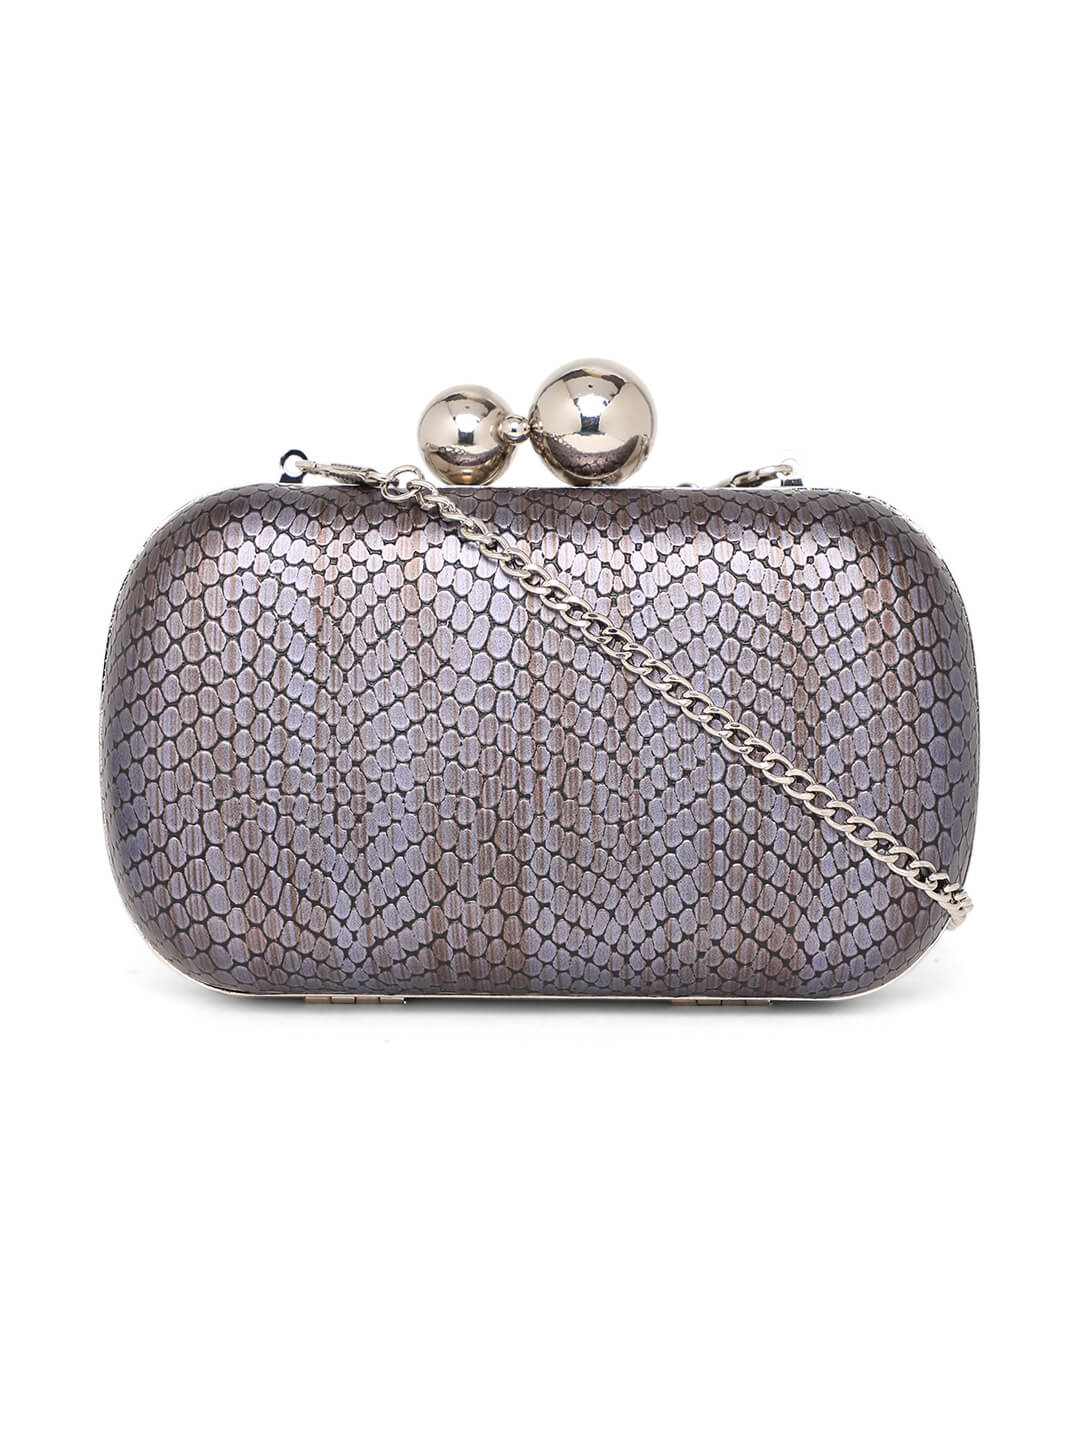 Kiss Lock Clutch Bag